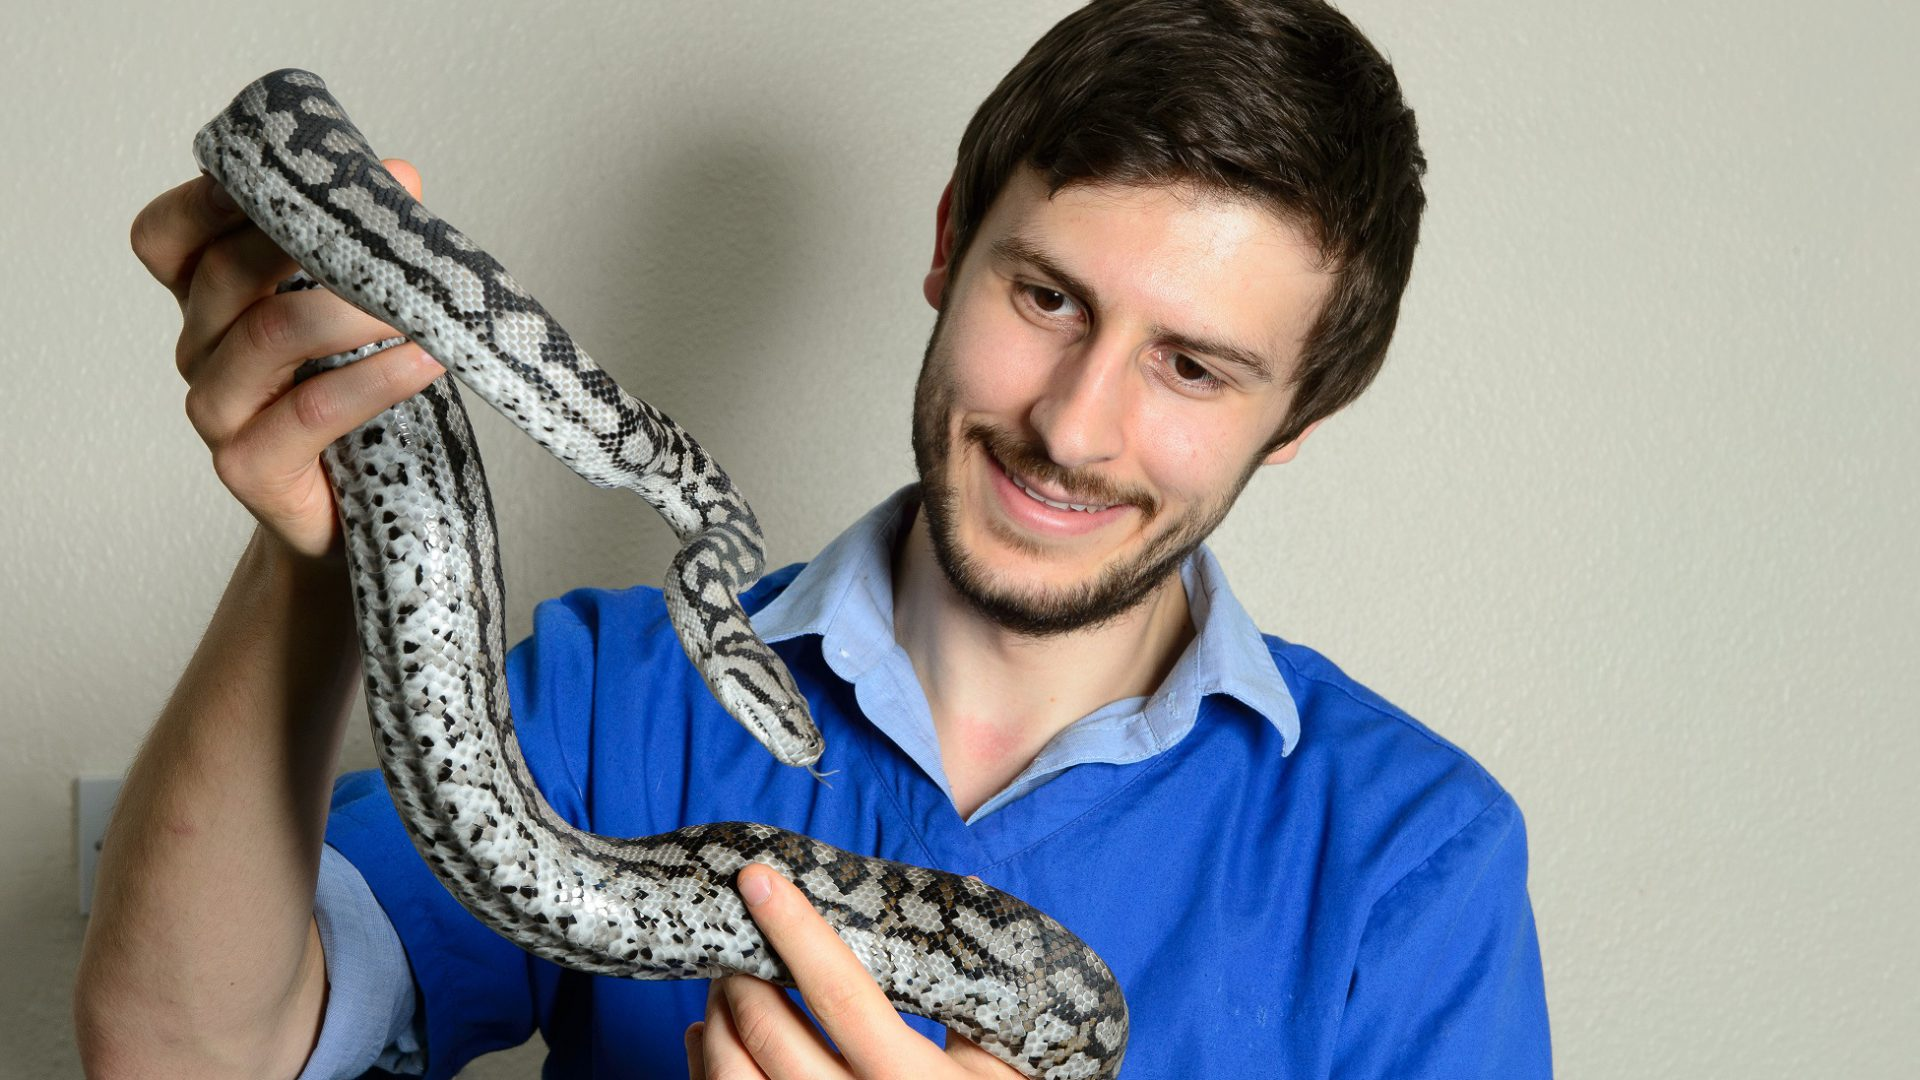 Exotics expert to treat everything from snakes to salamanders at new hospital